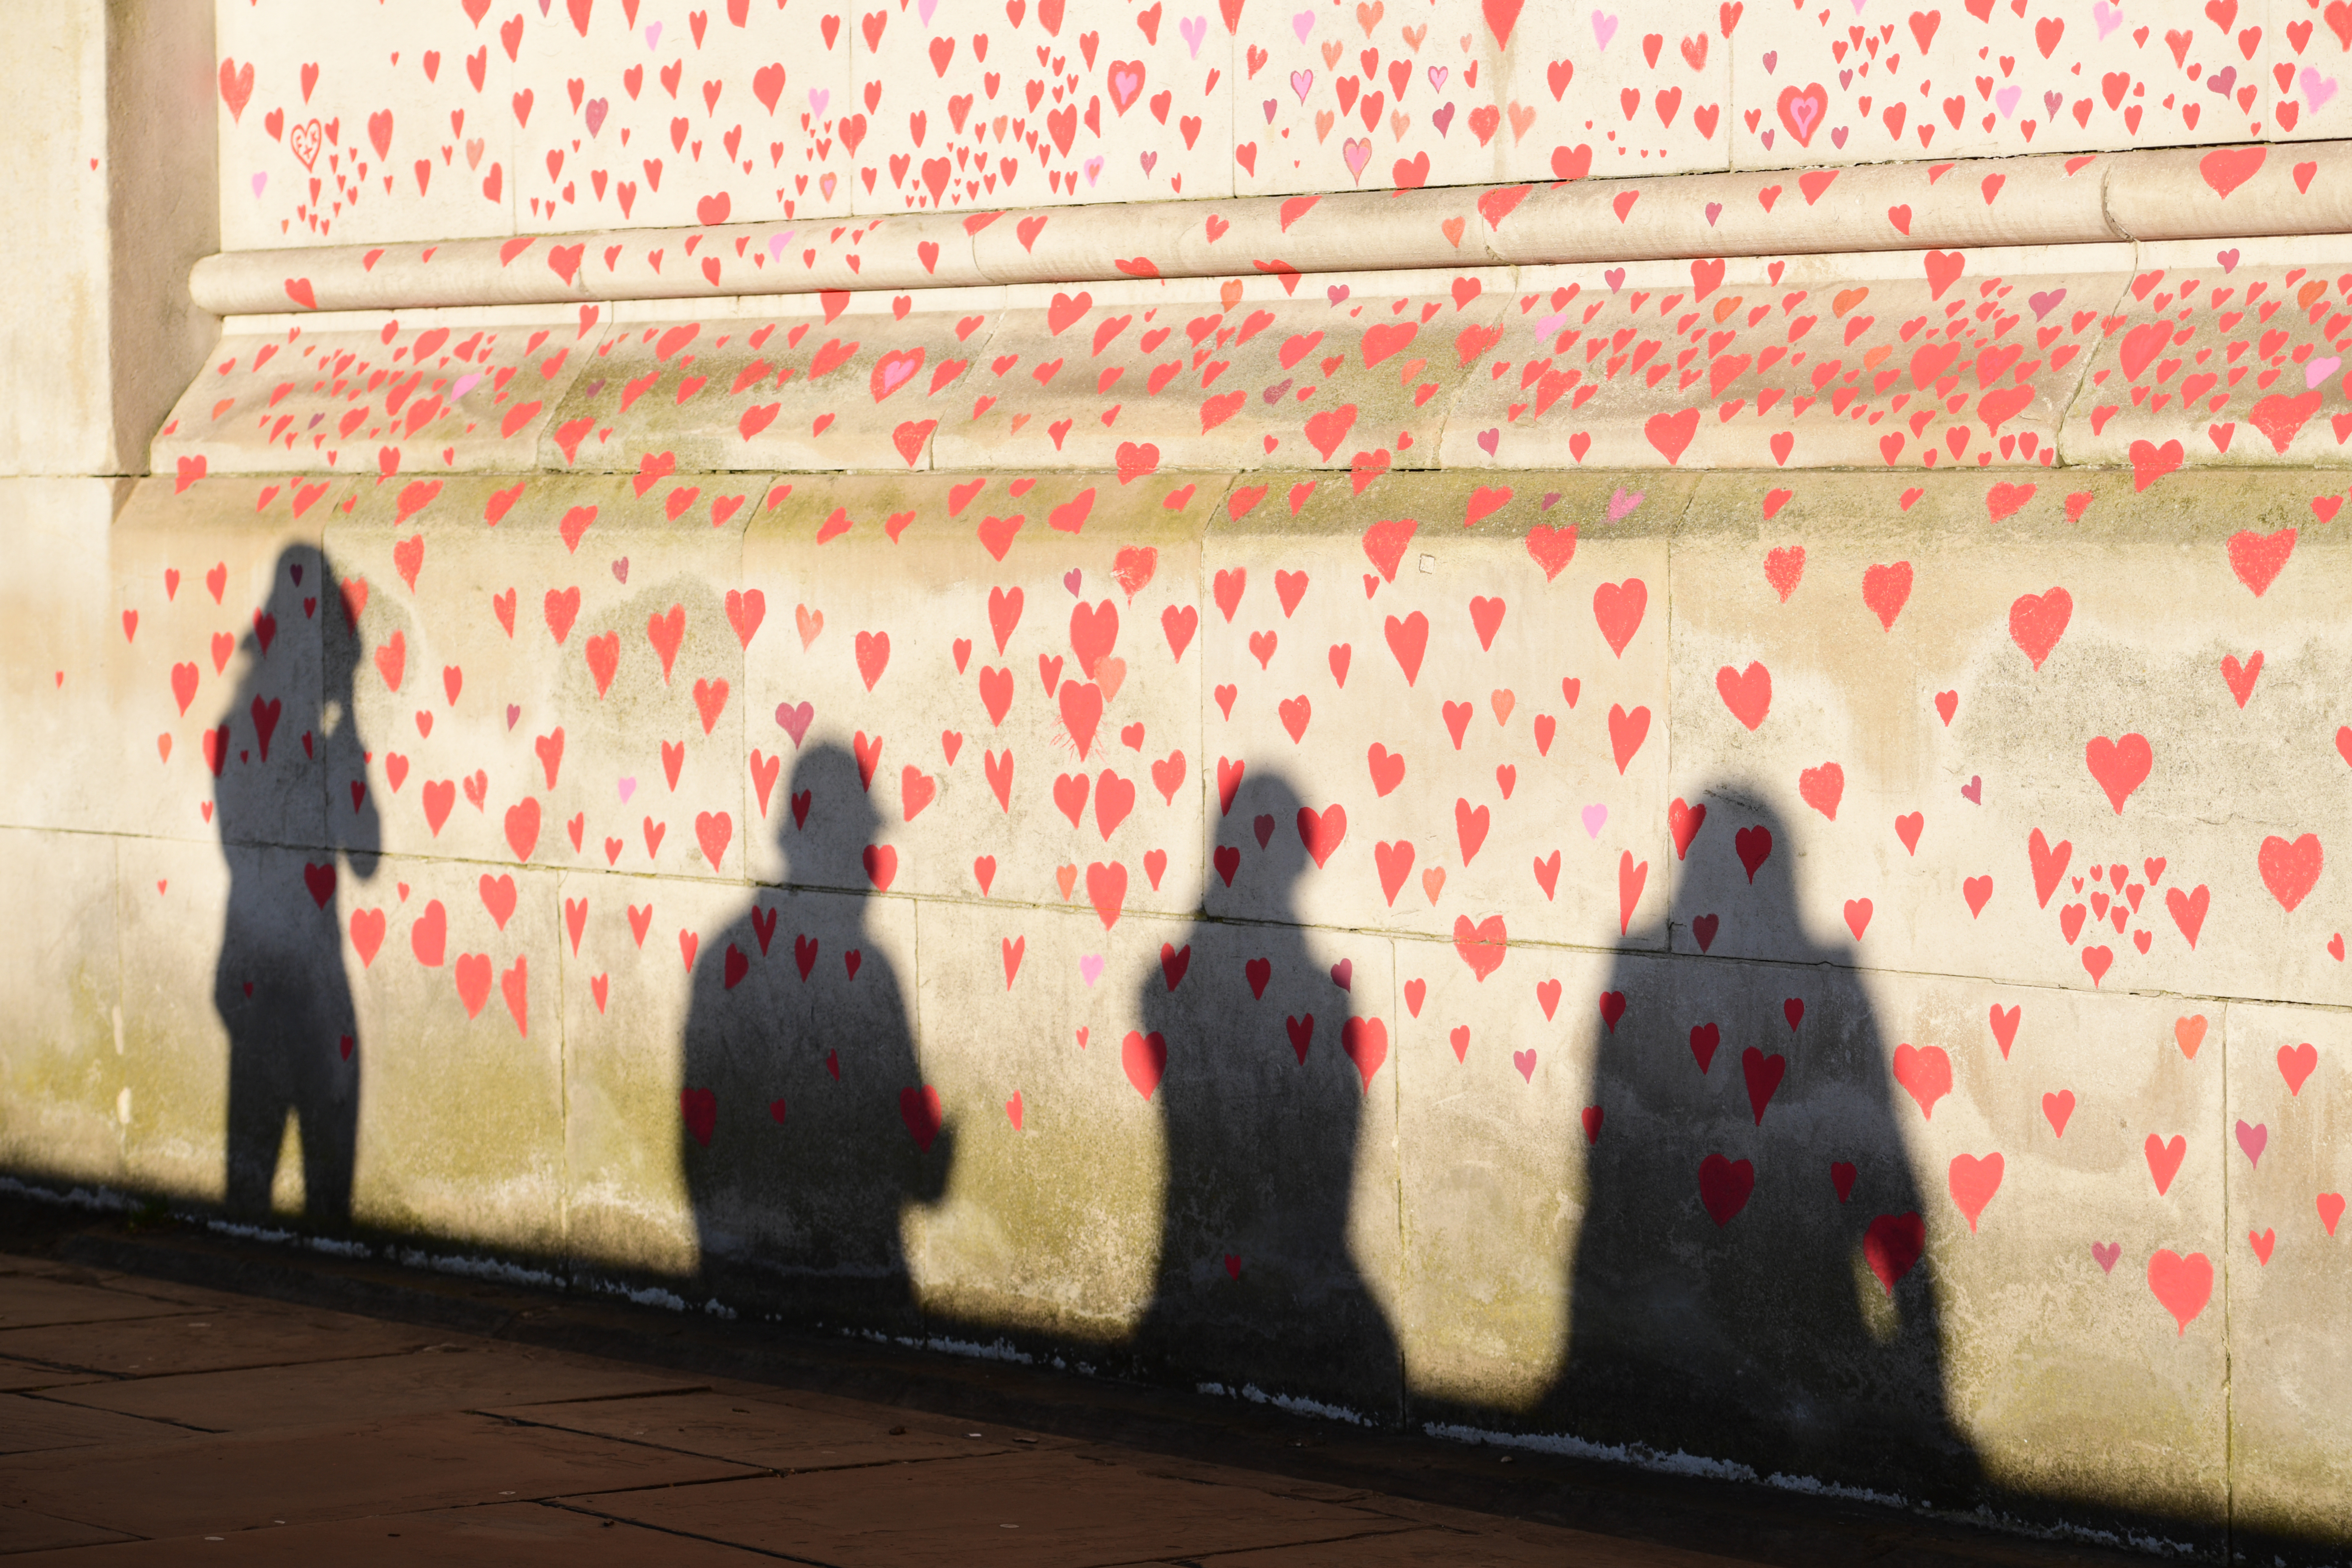 <p>People are silhouetted against the COVID-19 Memorial Wall on the Embankment, central London, which has been painted with hearts in memory of the more than 145,000 people who have died in the UK from coronavirus. Picture date: Monday March 29, 2021.</p>